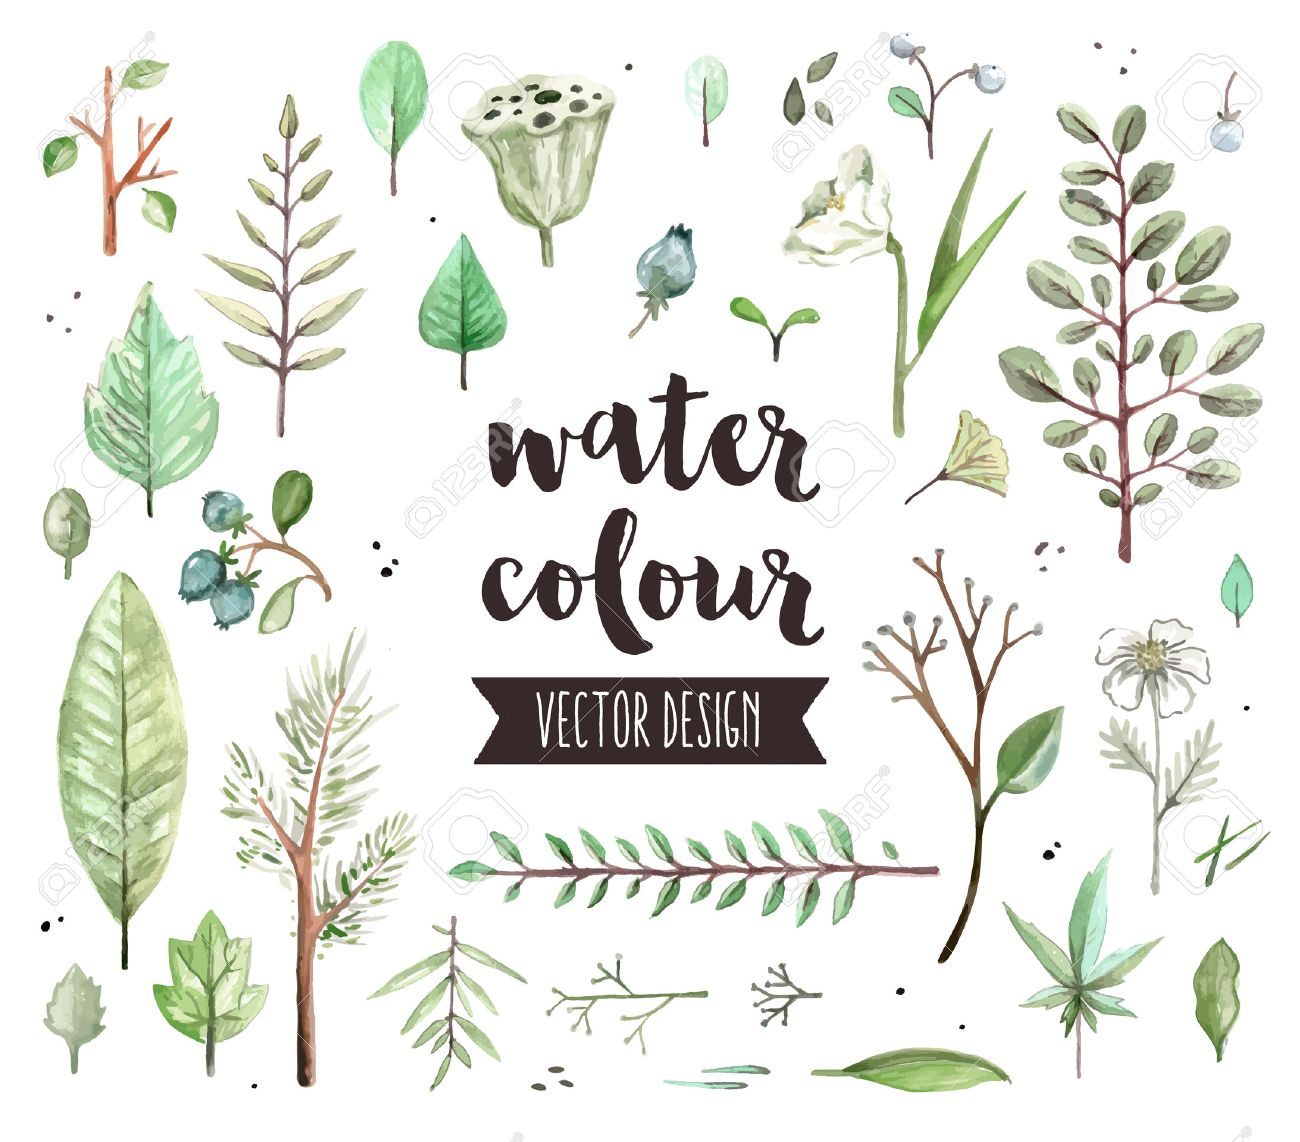 Premium quality watercolor icons set of various plant leaves, wild trees branch. realistic decoration with text lettering. Flat lay watercolour objects isolated on white background. Stock Vector - 53856859